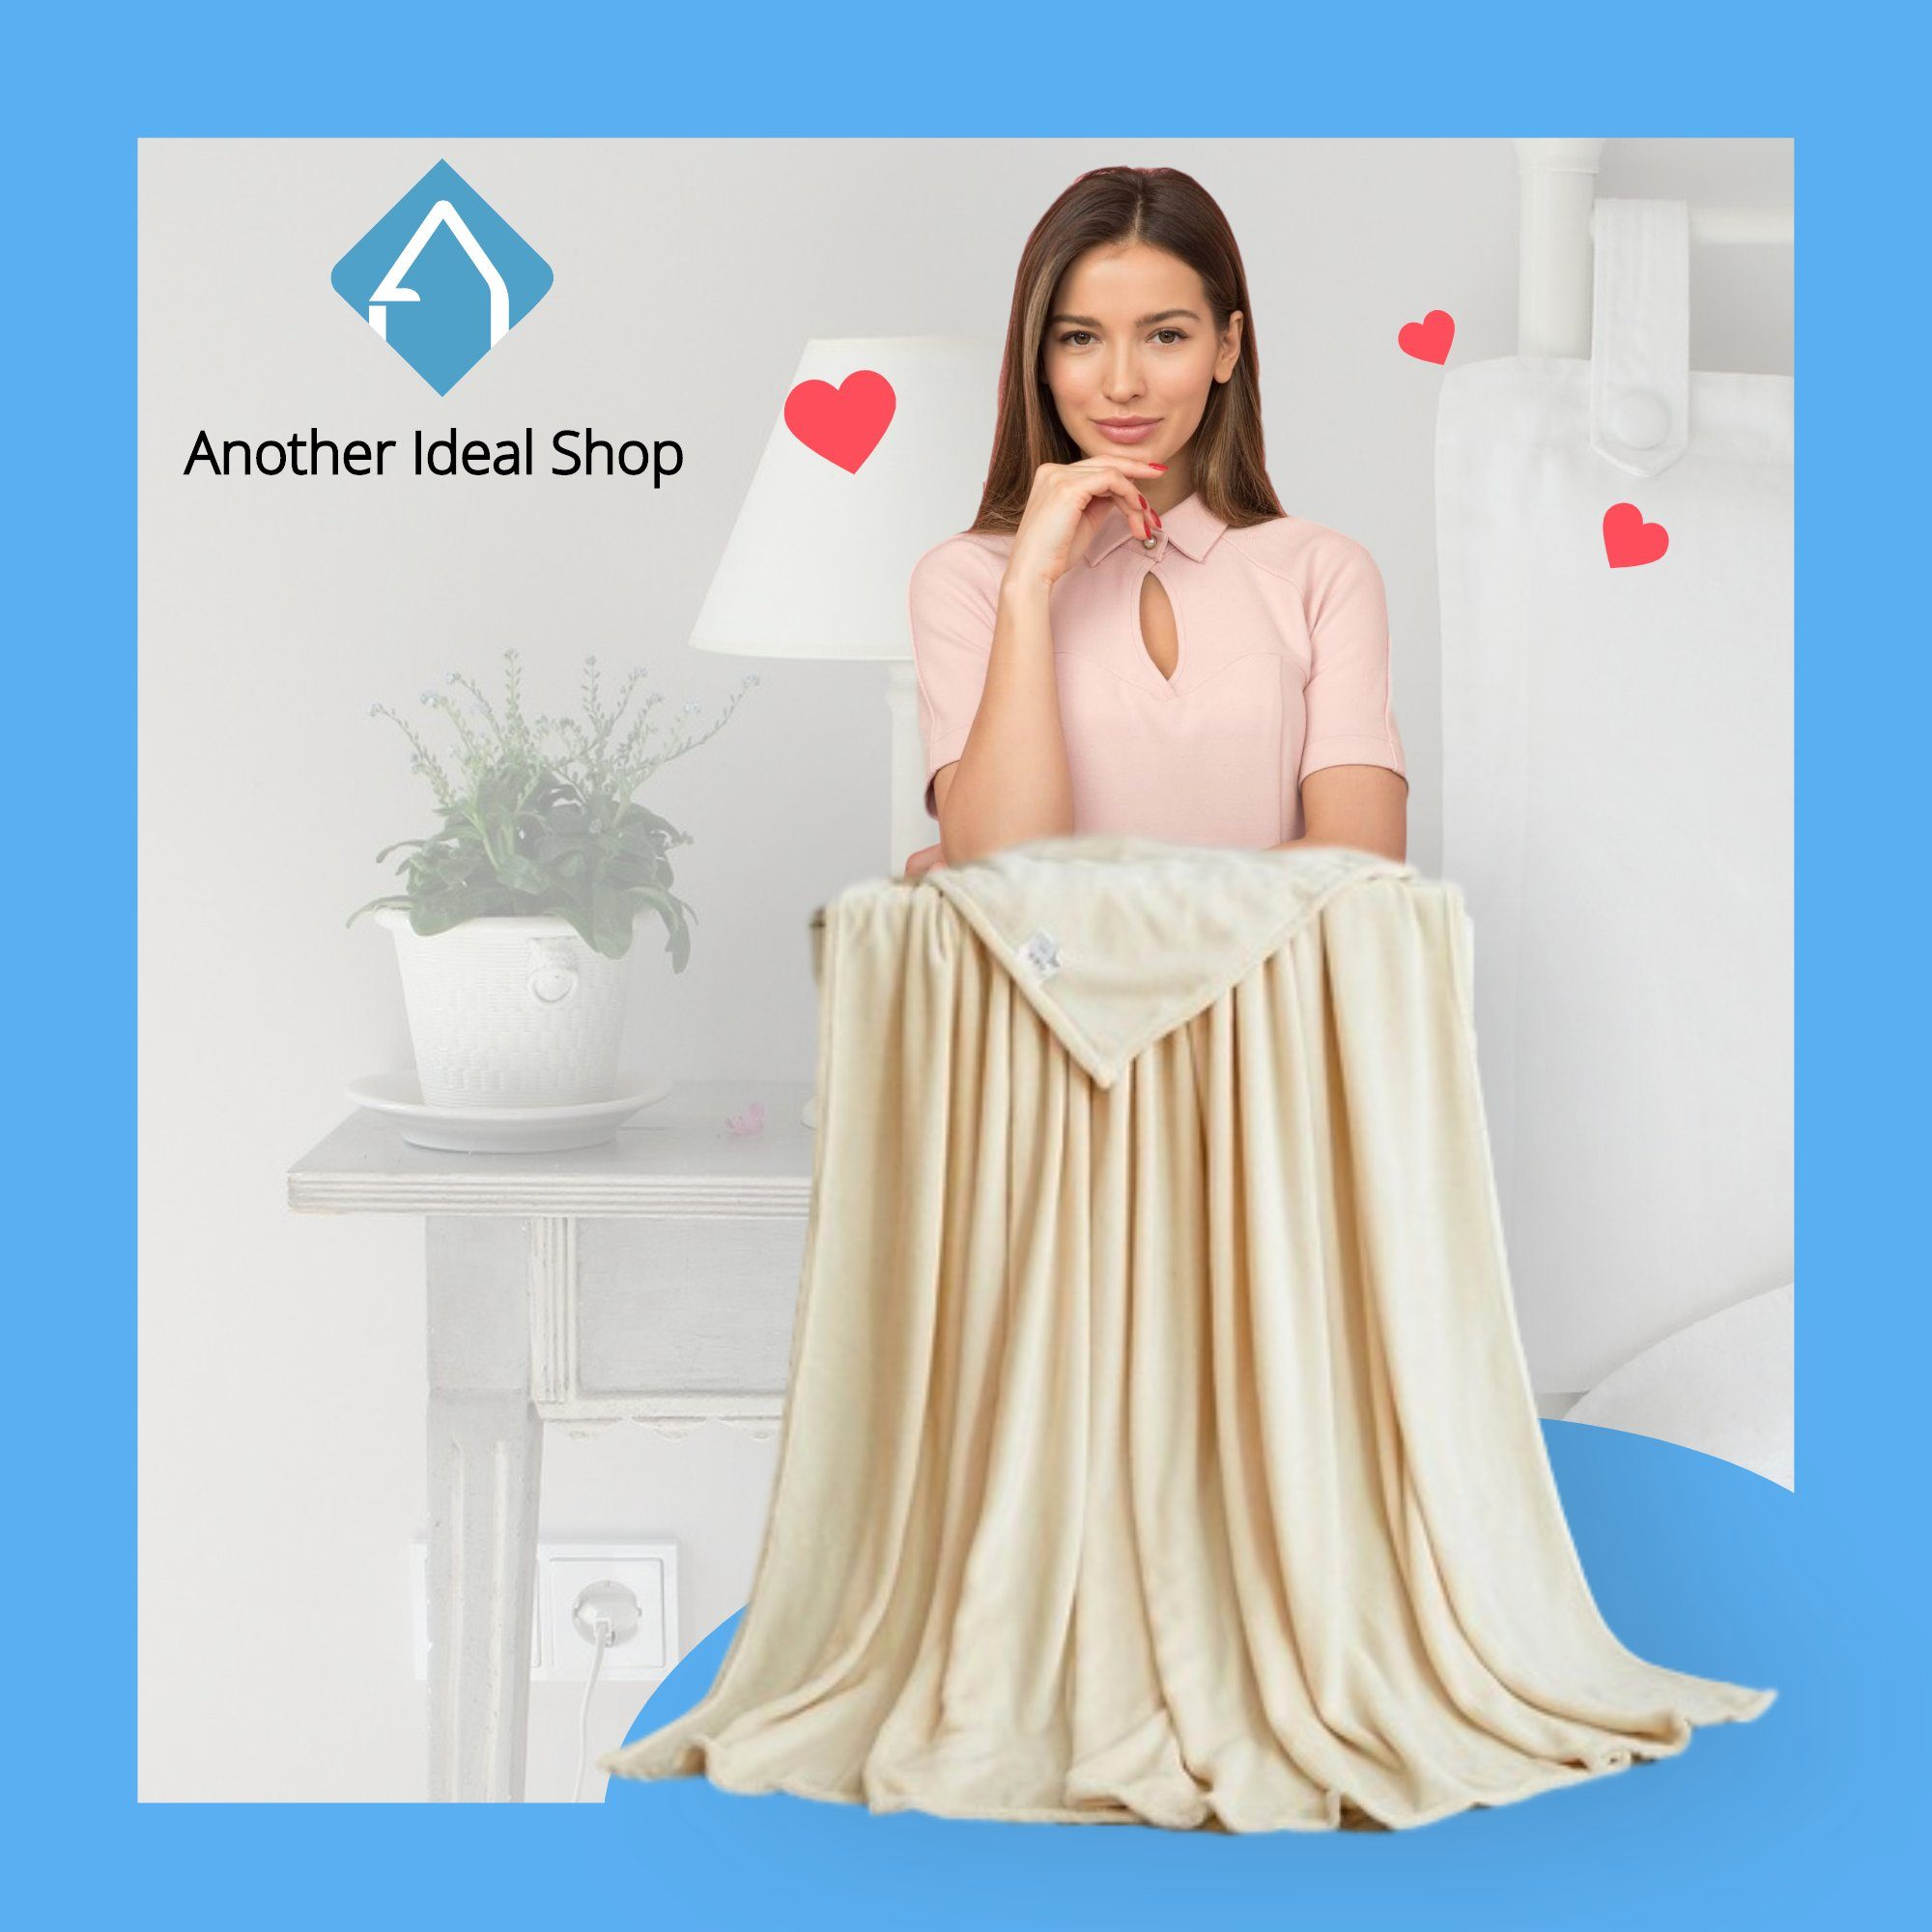 Luxury Weighted Blanket Another Ideal Shop 70cm x 100cm Biege